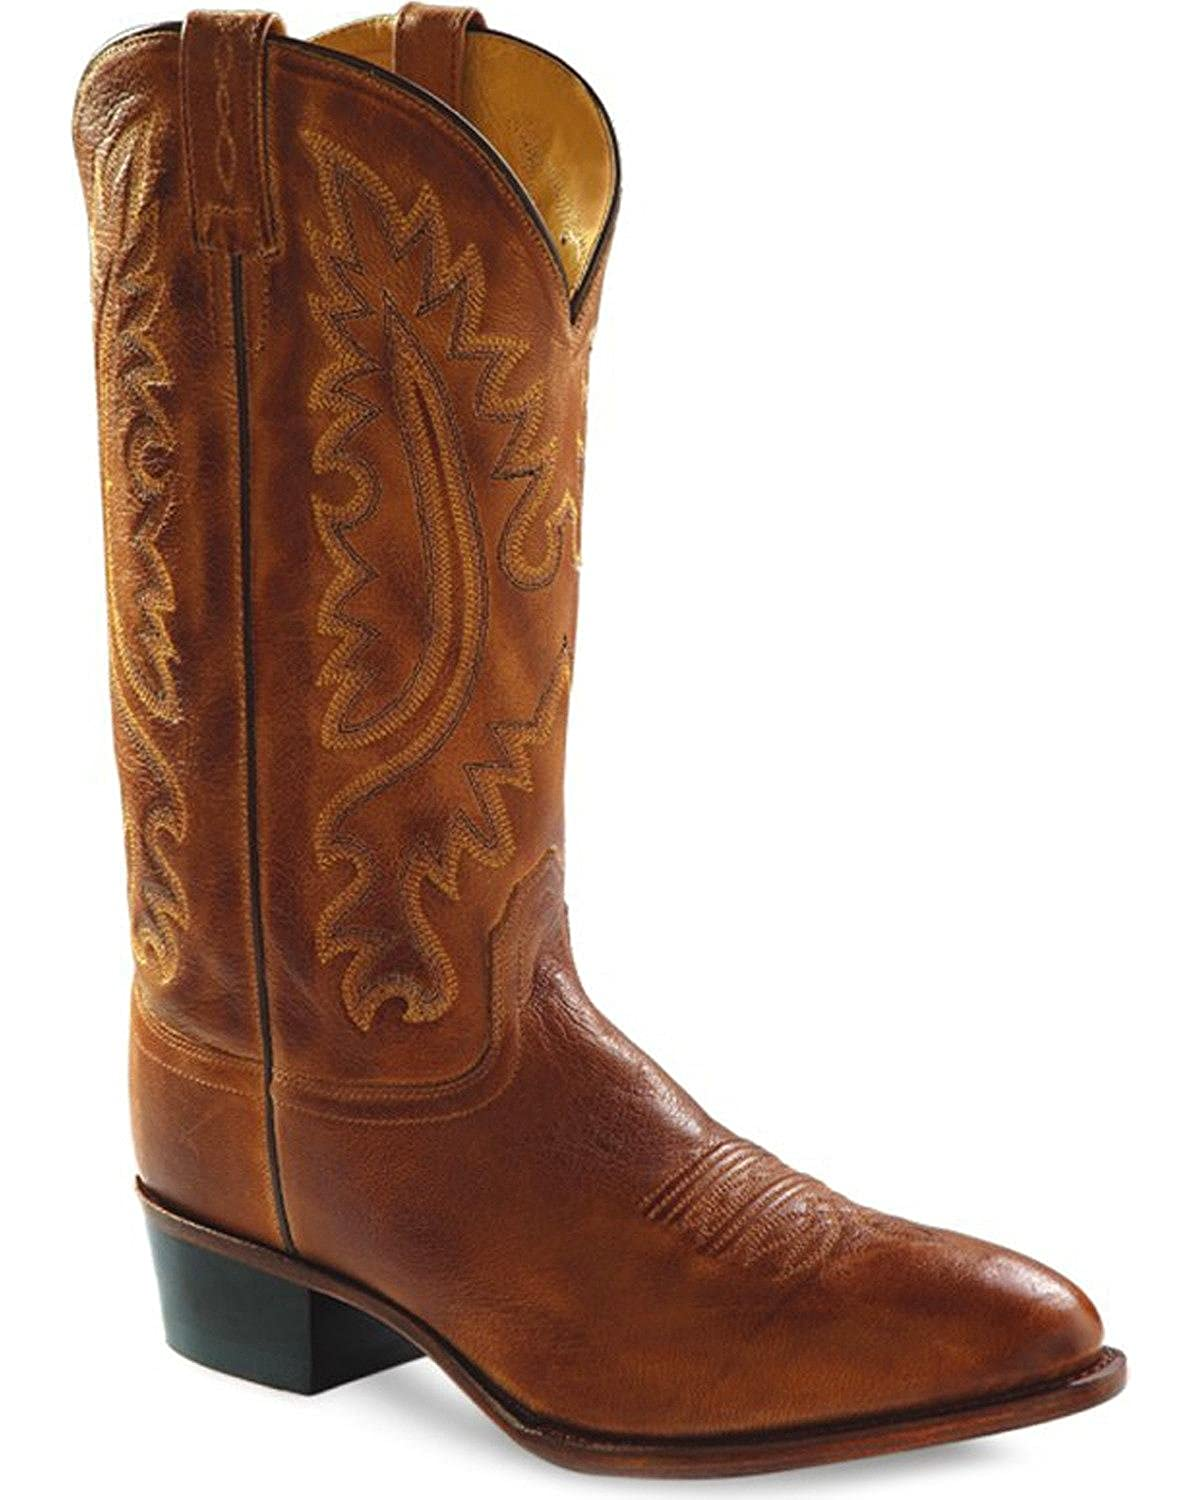 Old West Men's Western Cowboy Boot Round Toe - 5229